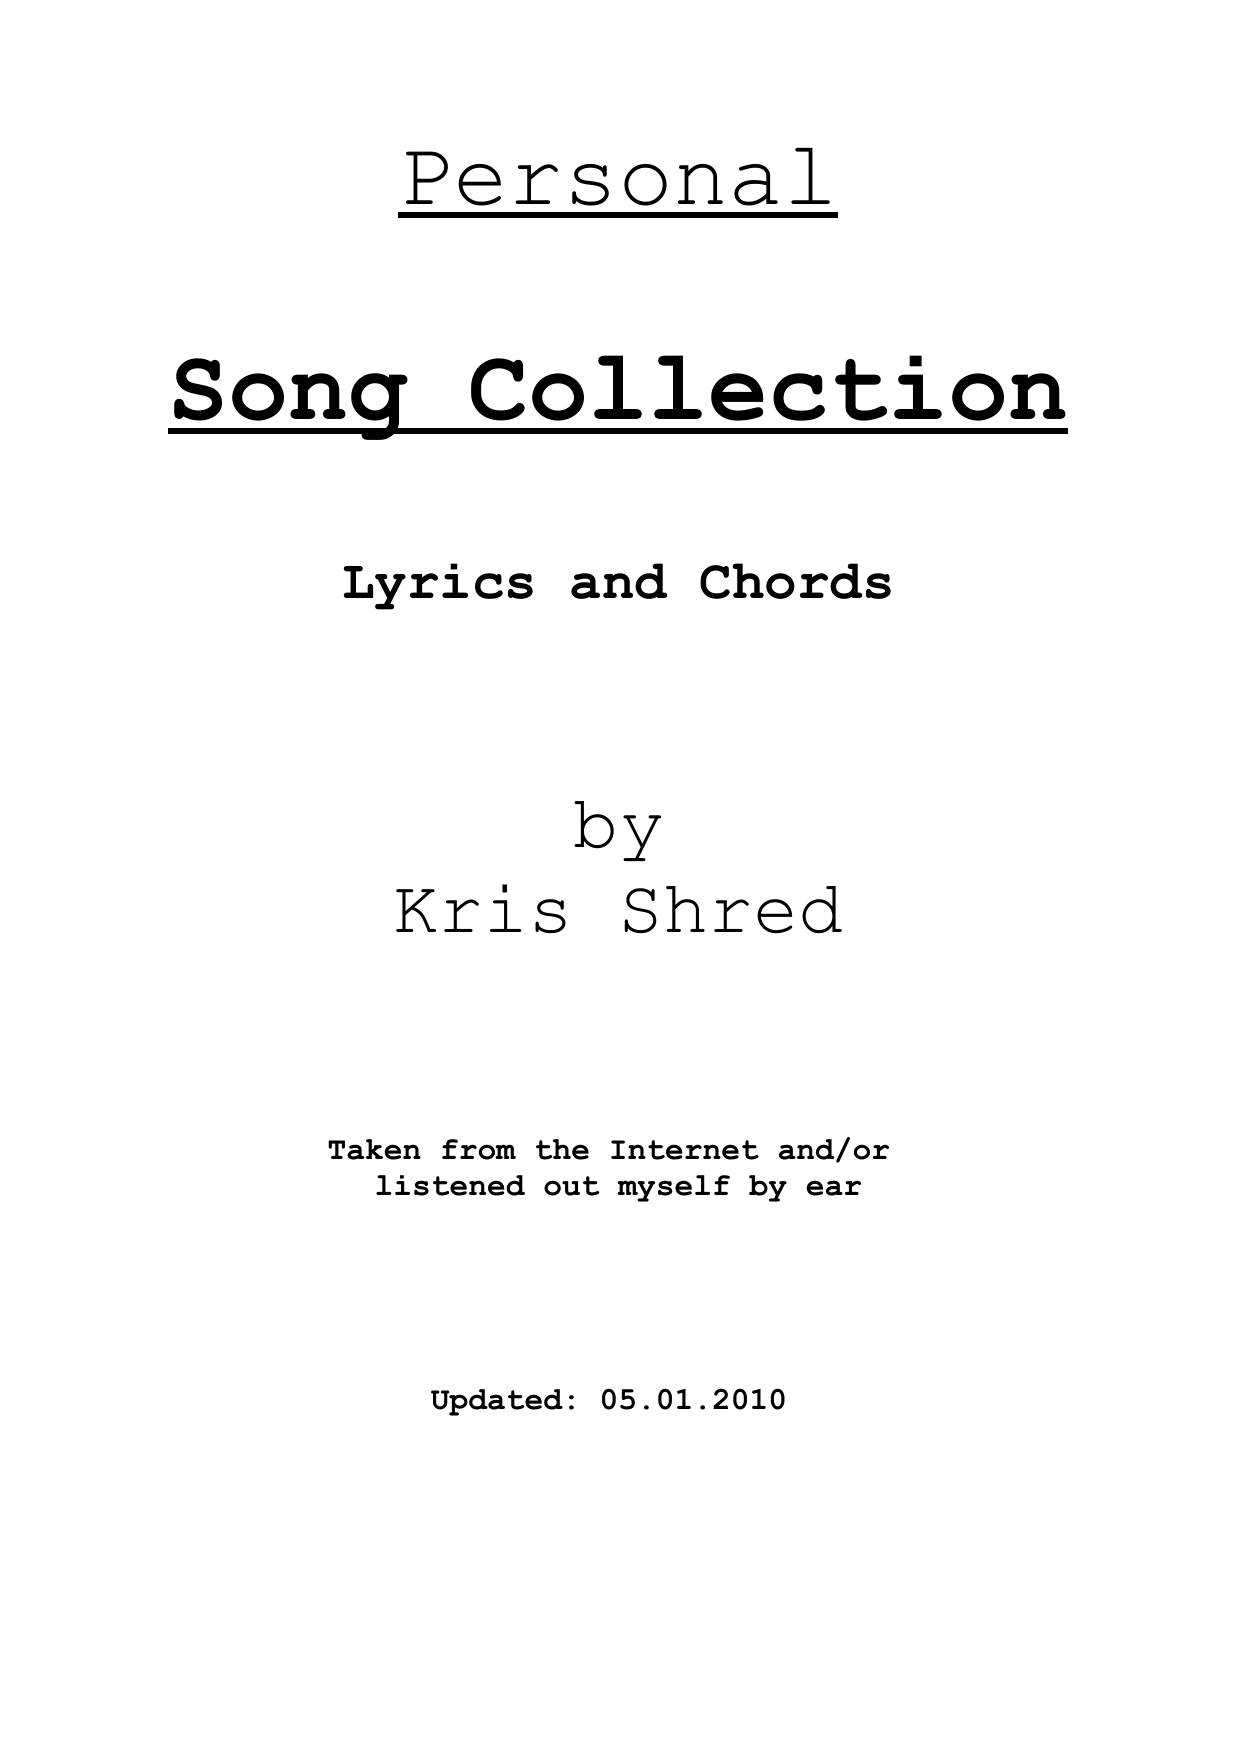 Songlyrics with Chords by Kris Shred